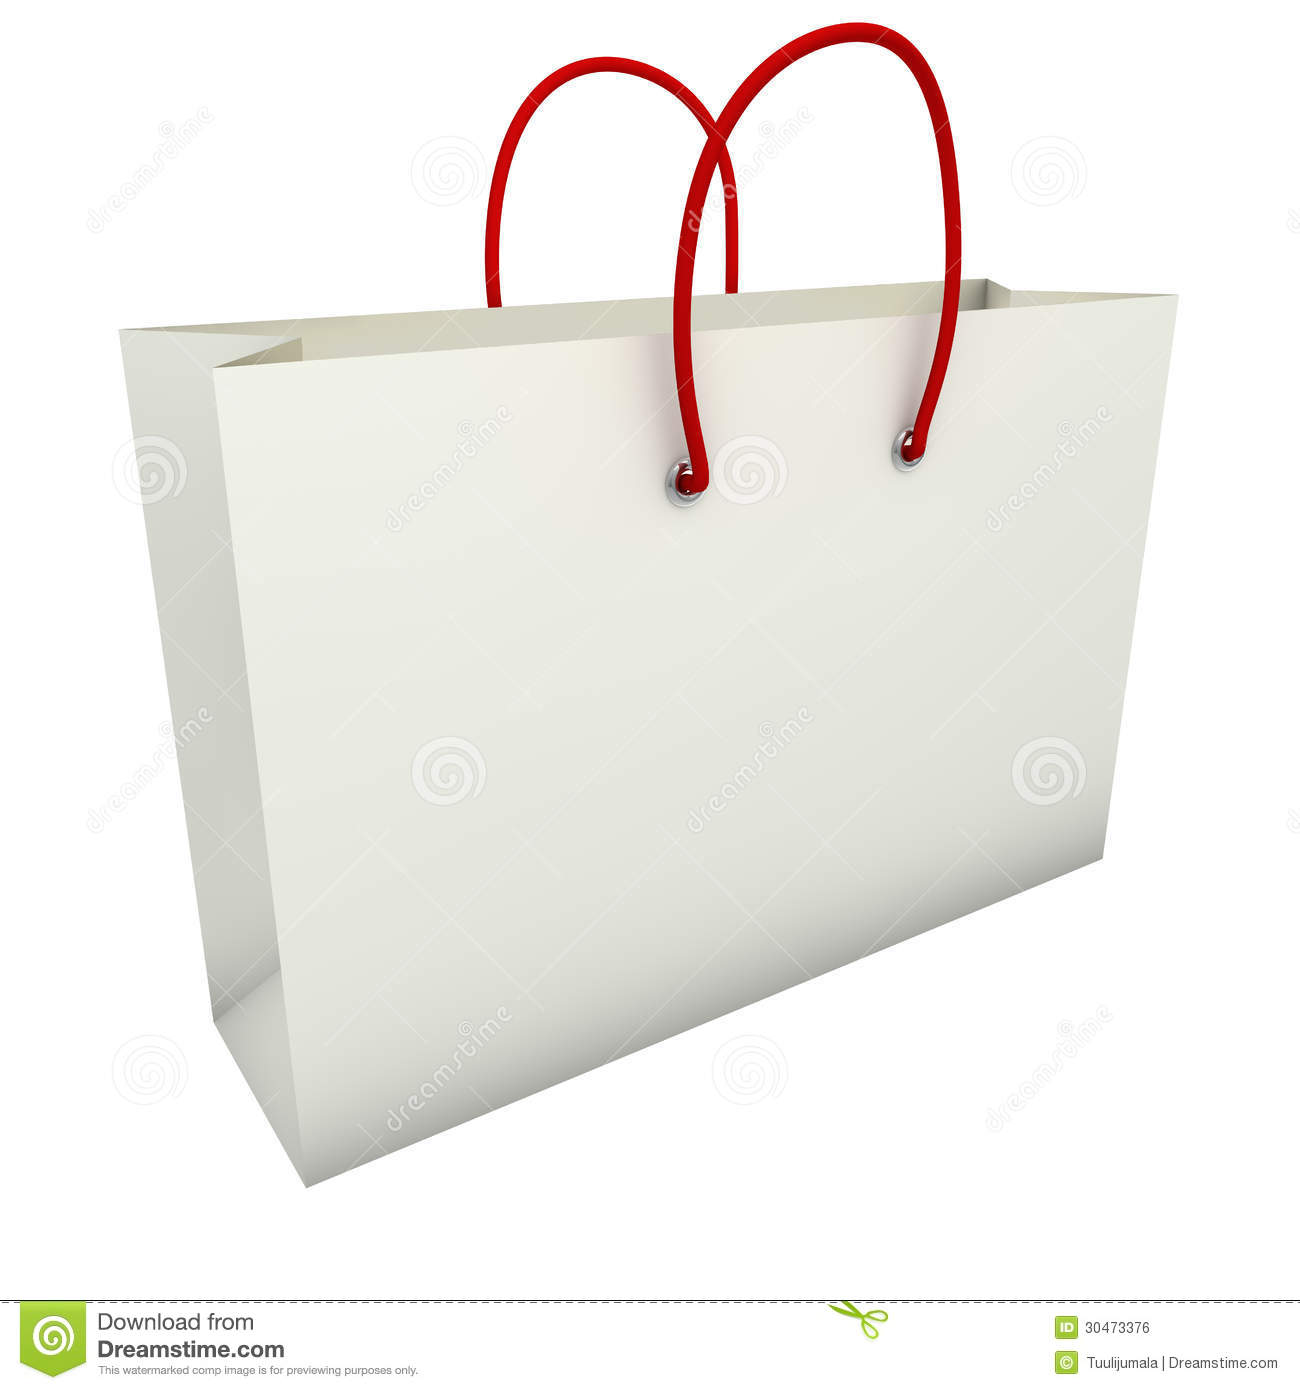 Empty White Shopping Bag With Red Handles Royalty Free ...